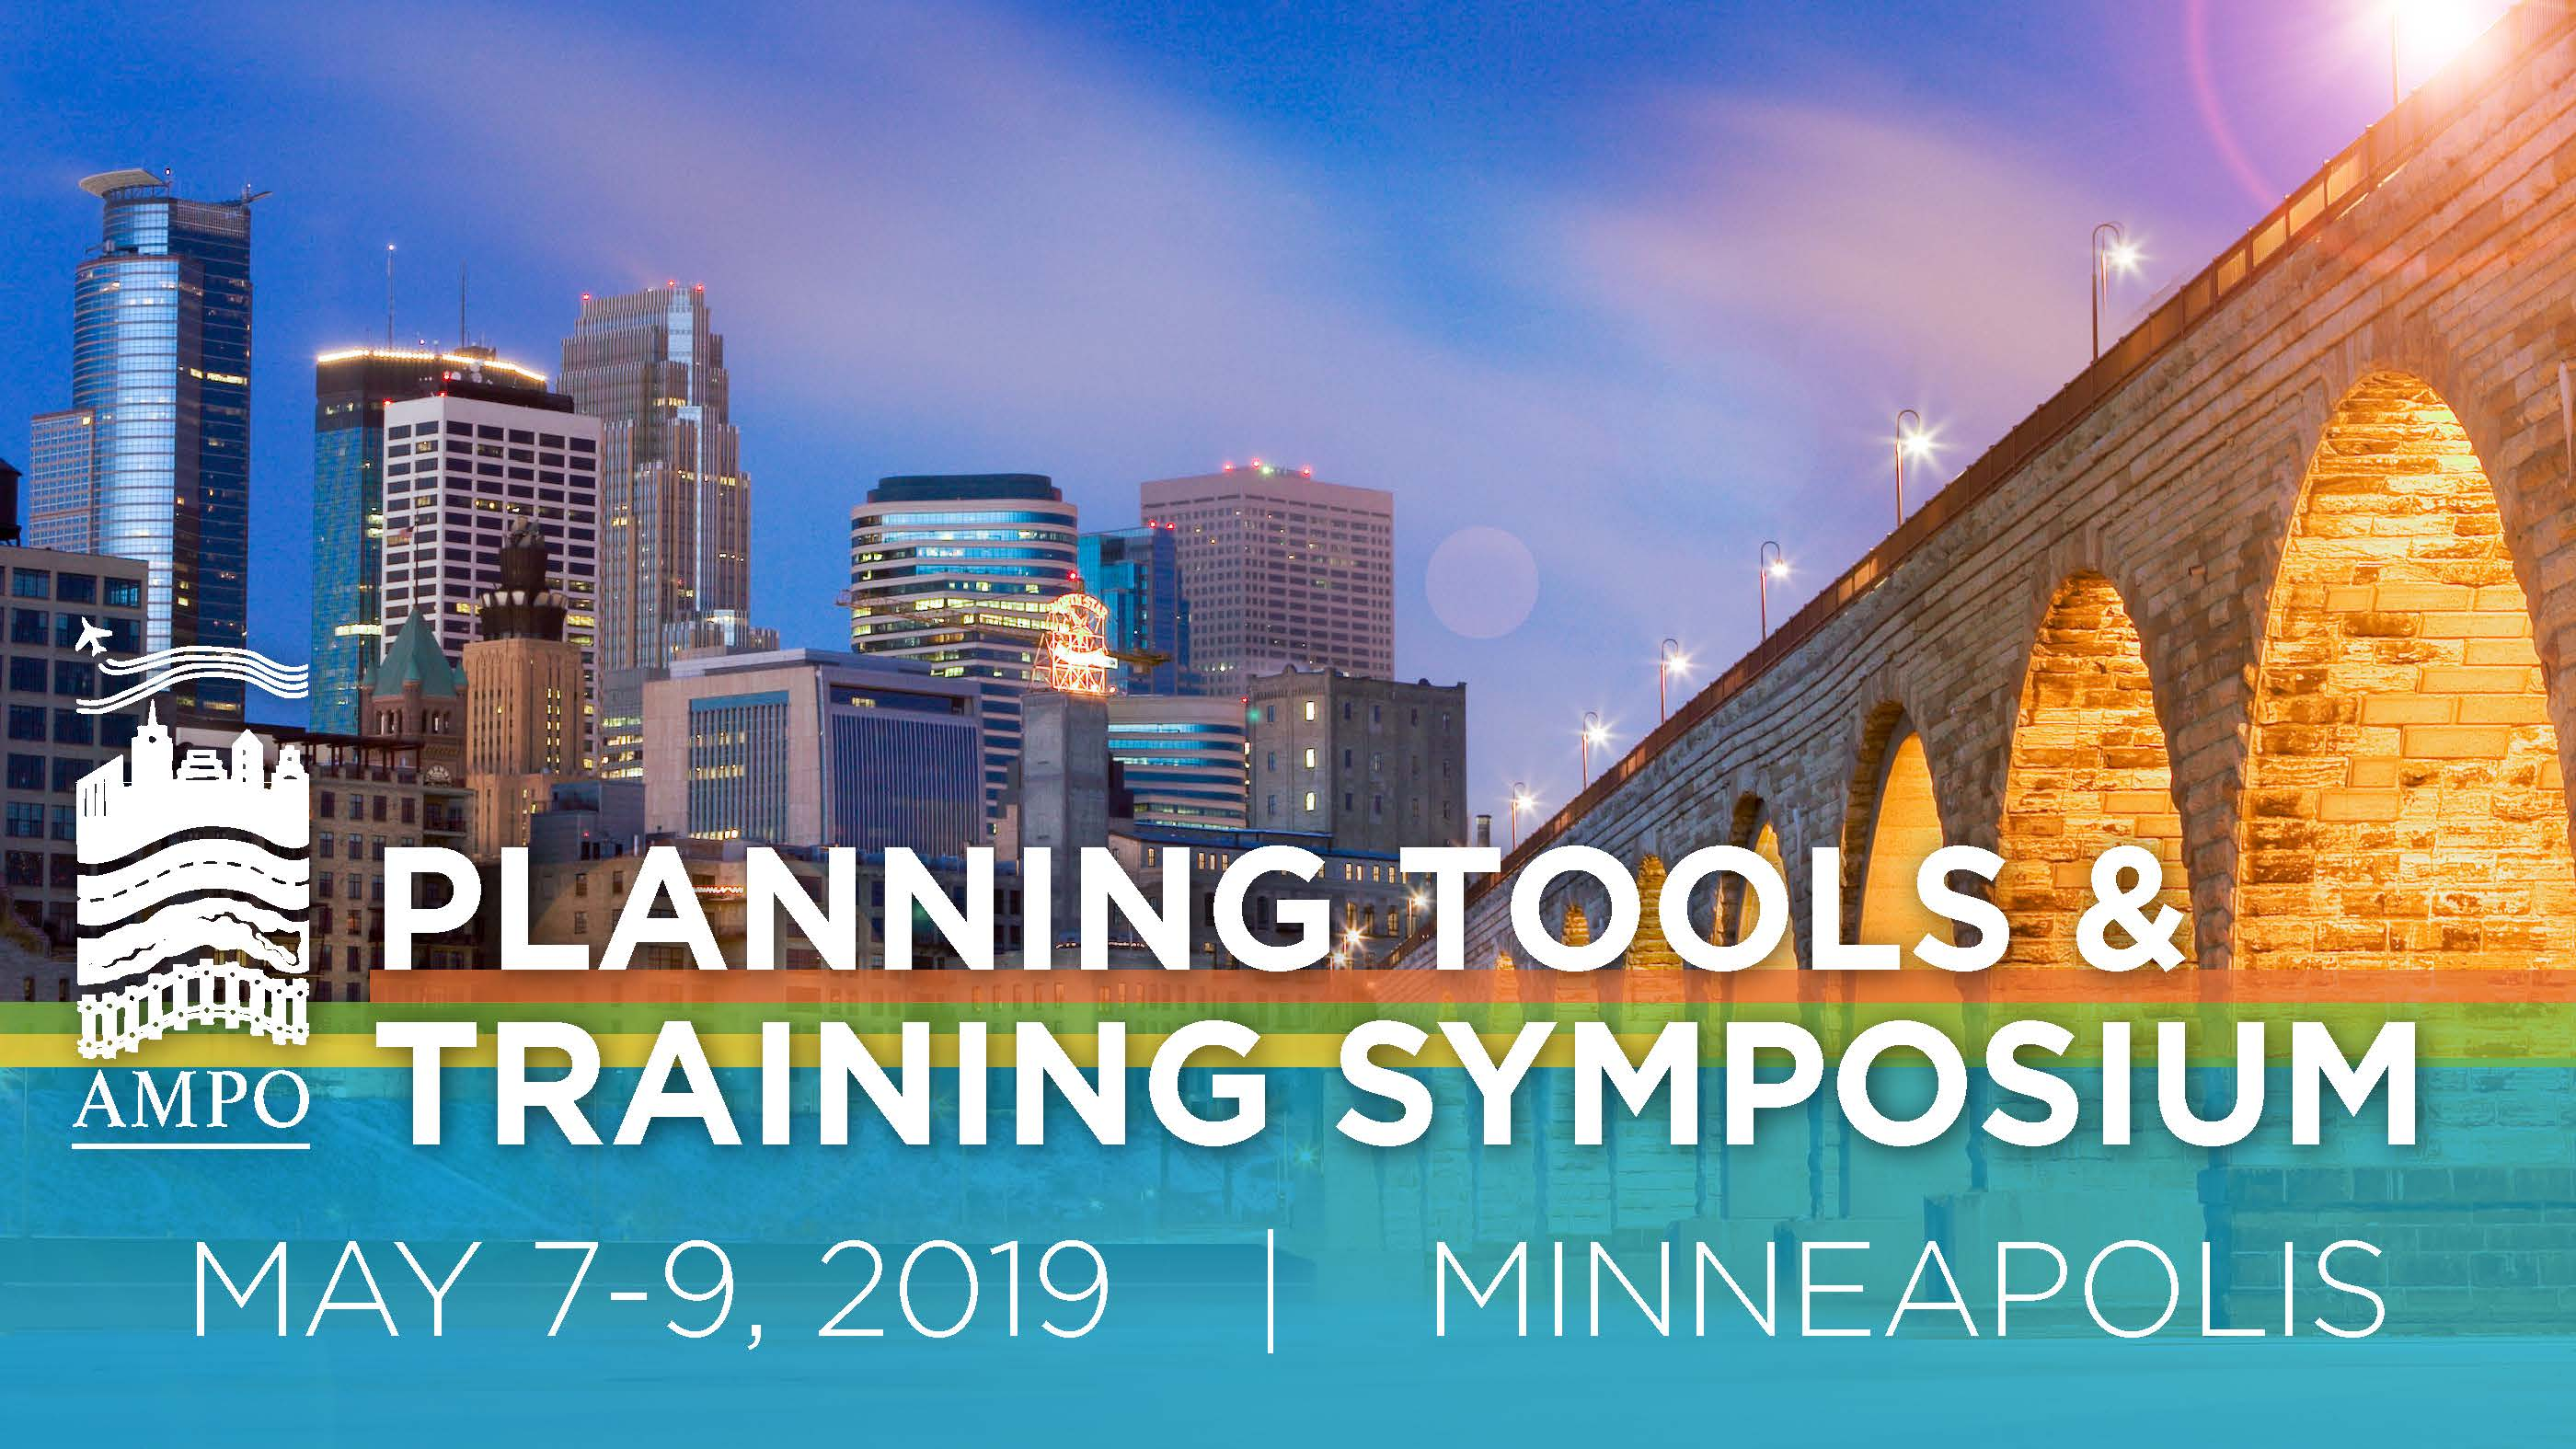 2019 AMPO Planning Tools & Training Symposium